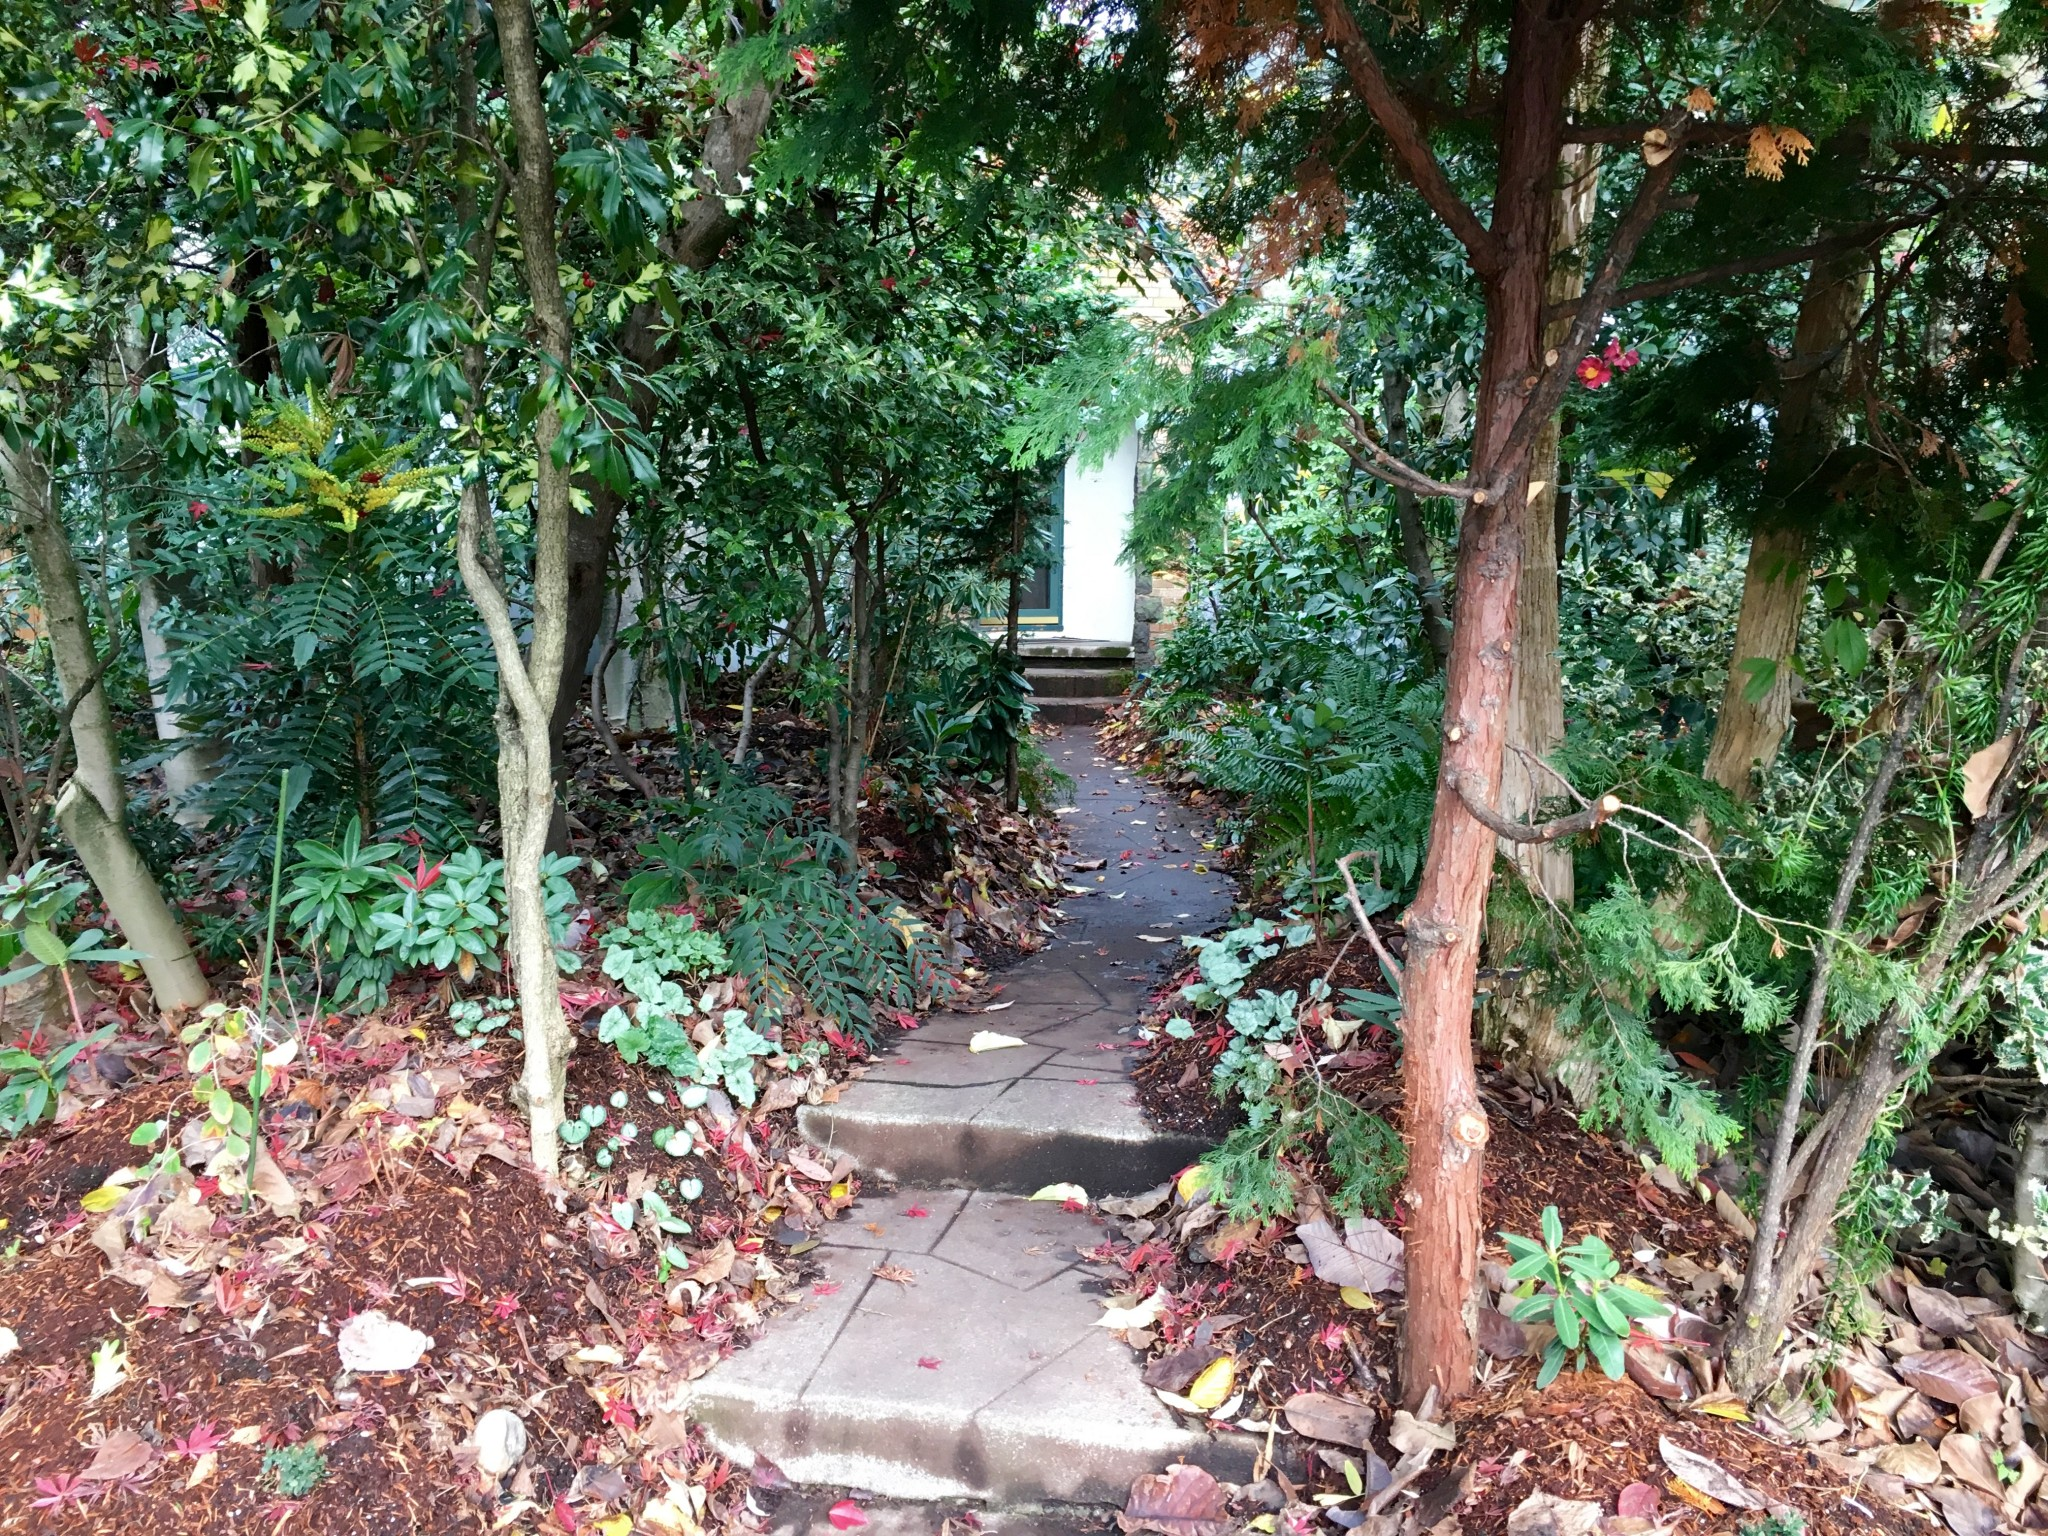 Straight ahead, the path to the house.